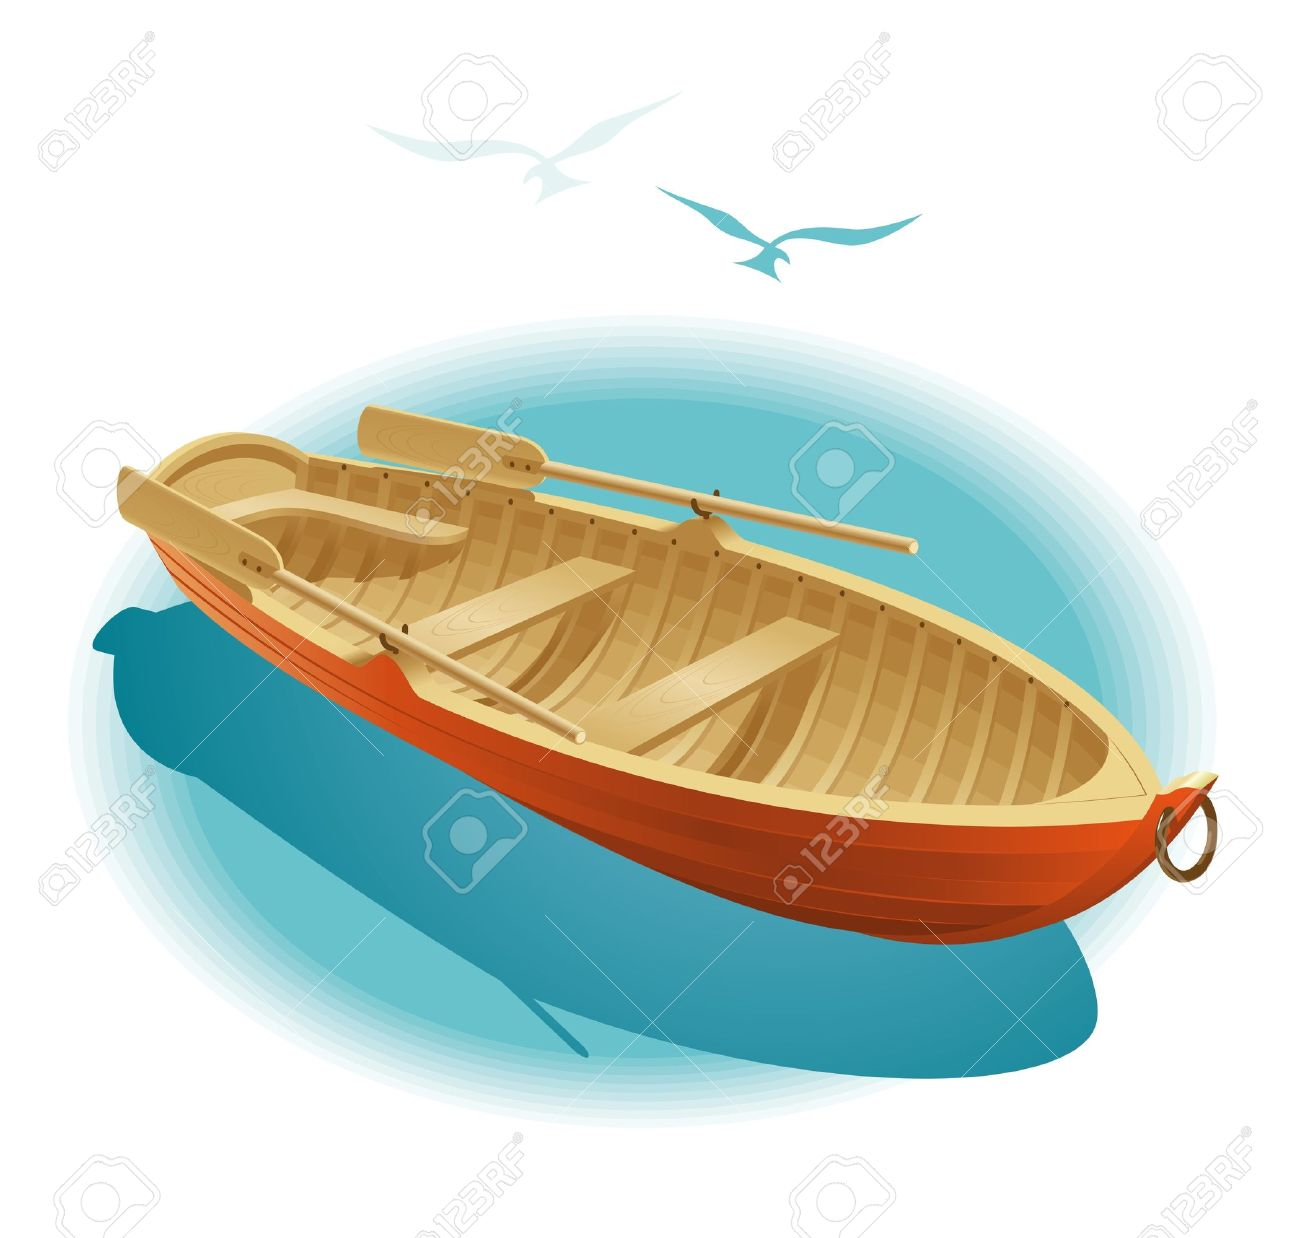 Yacht transportation pencil and. Boat clipart water transport